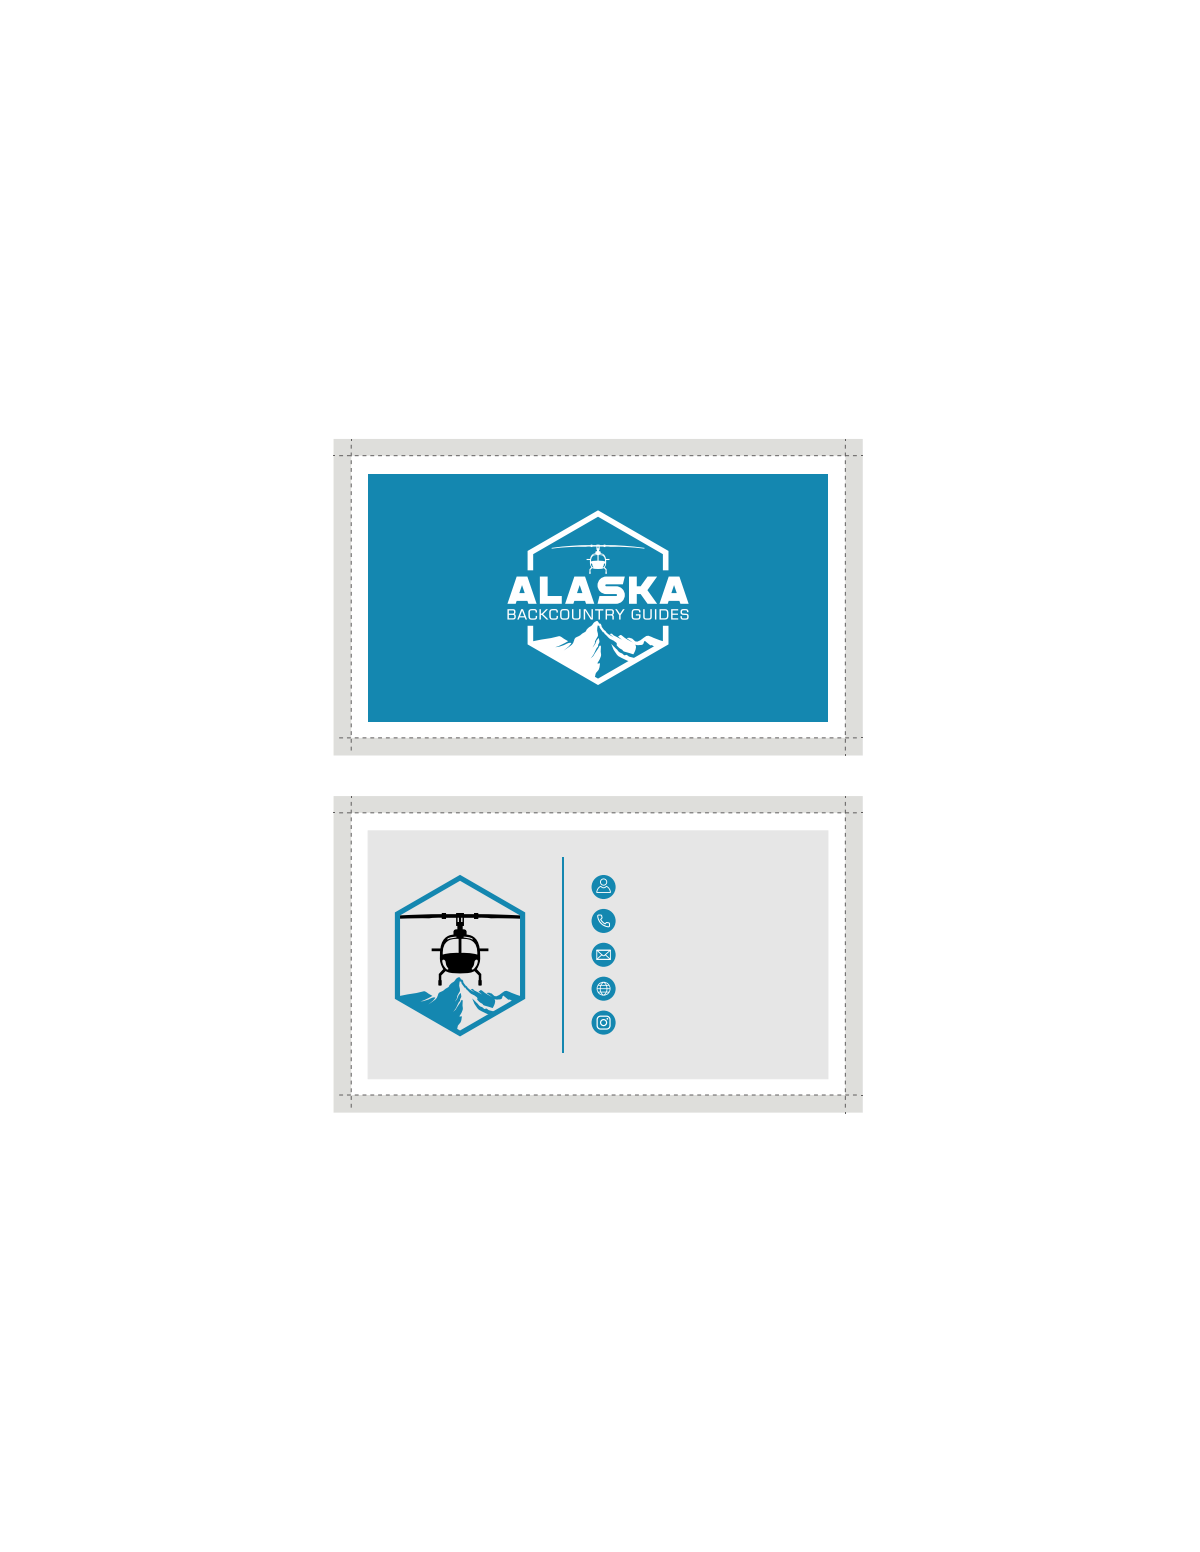 Brand book and logo variations for Alaska Backcountry Guides